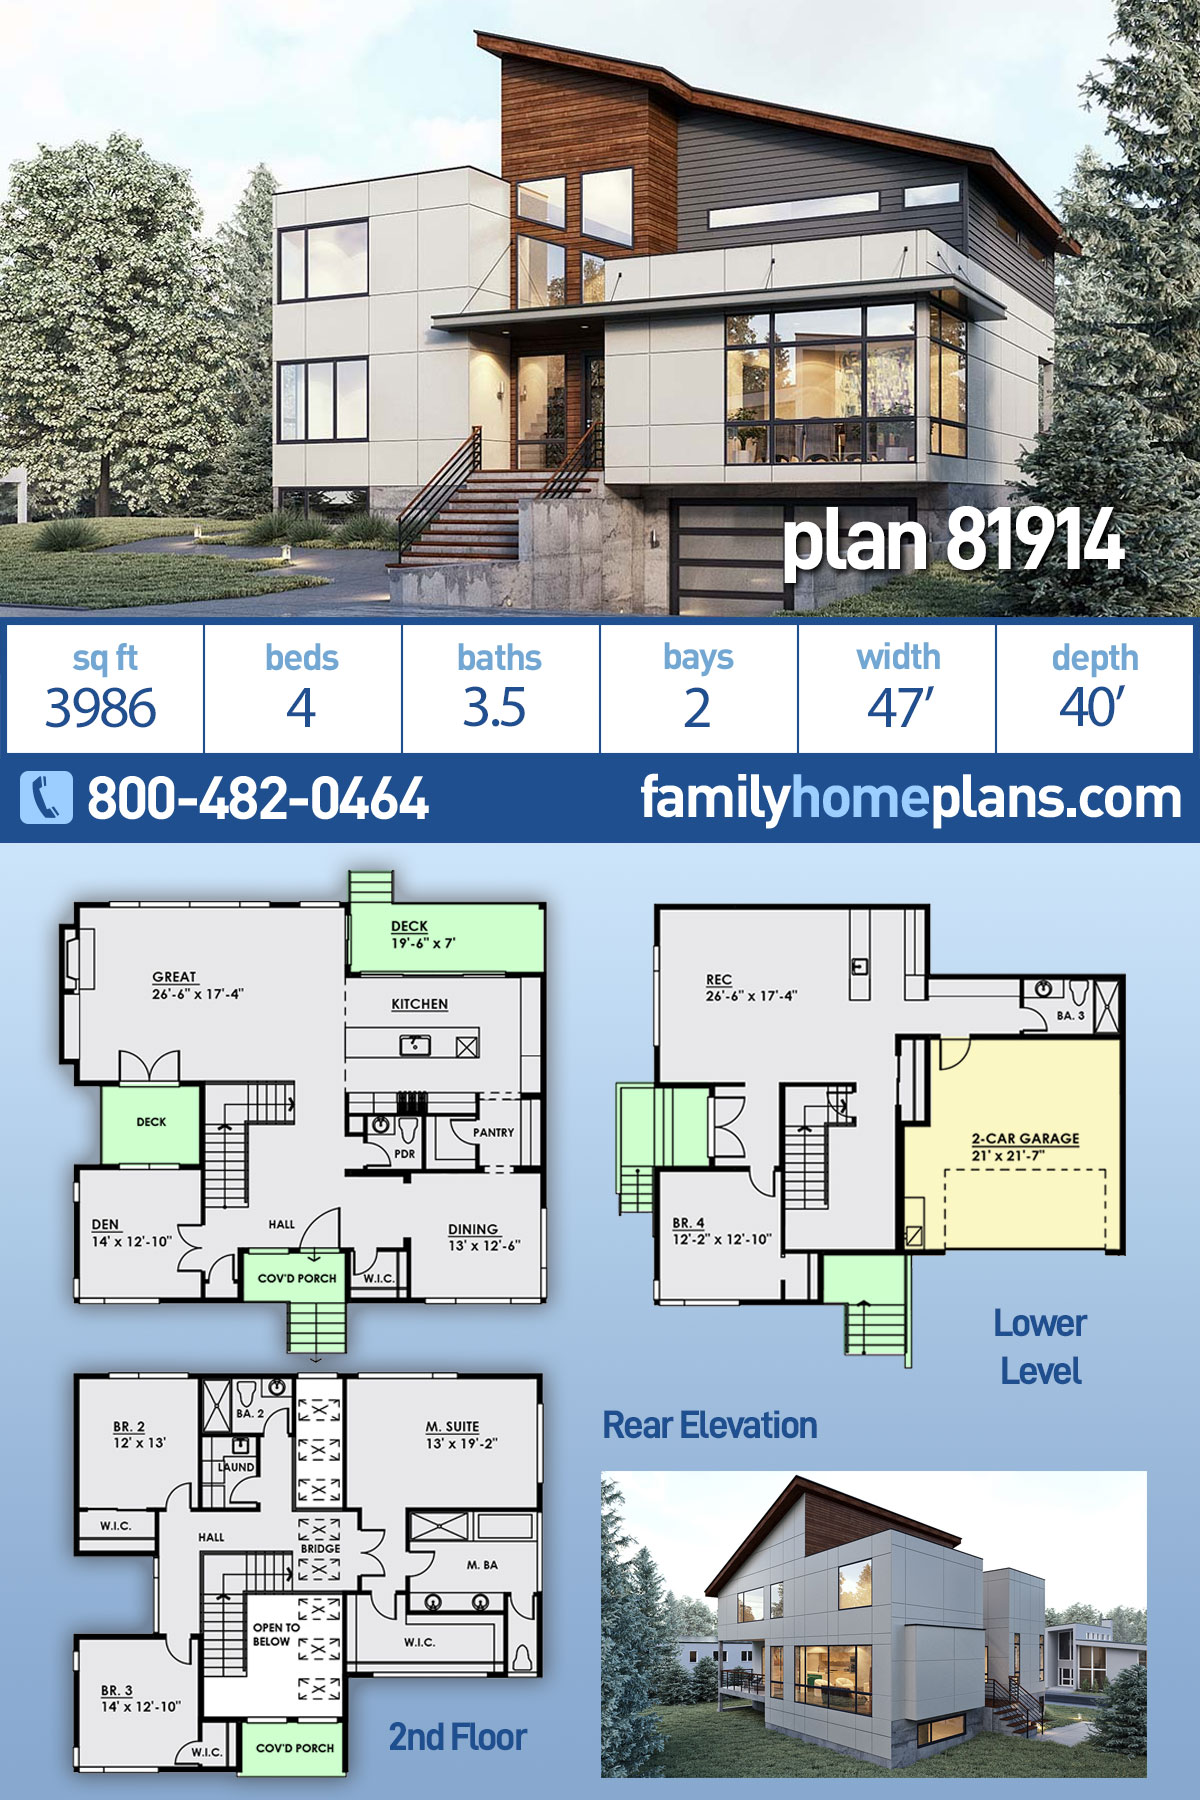 Modern House Plan 81914 with 4 Beds, 4 Baths, 2 Car Garage